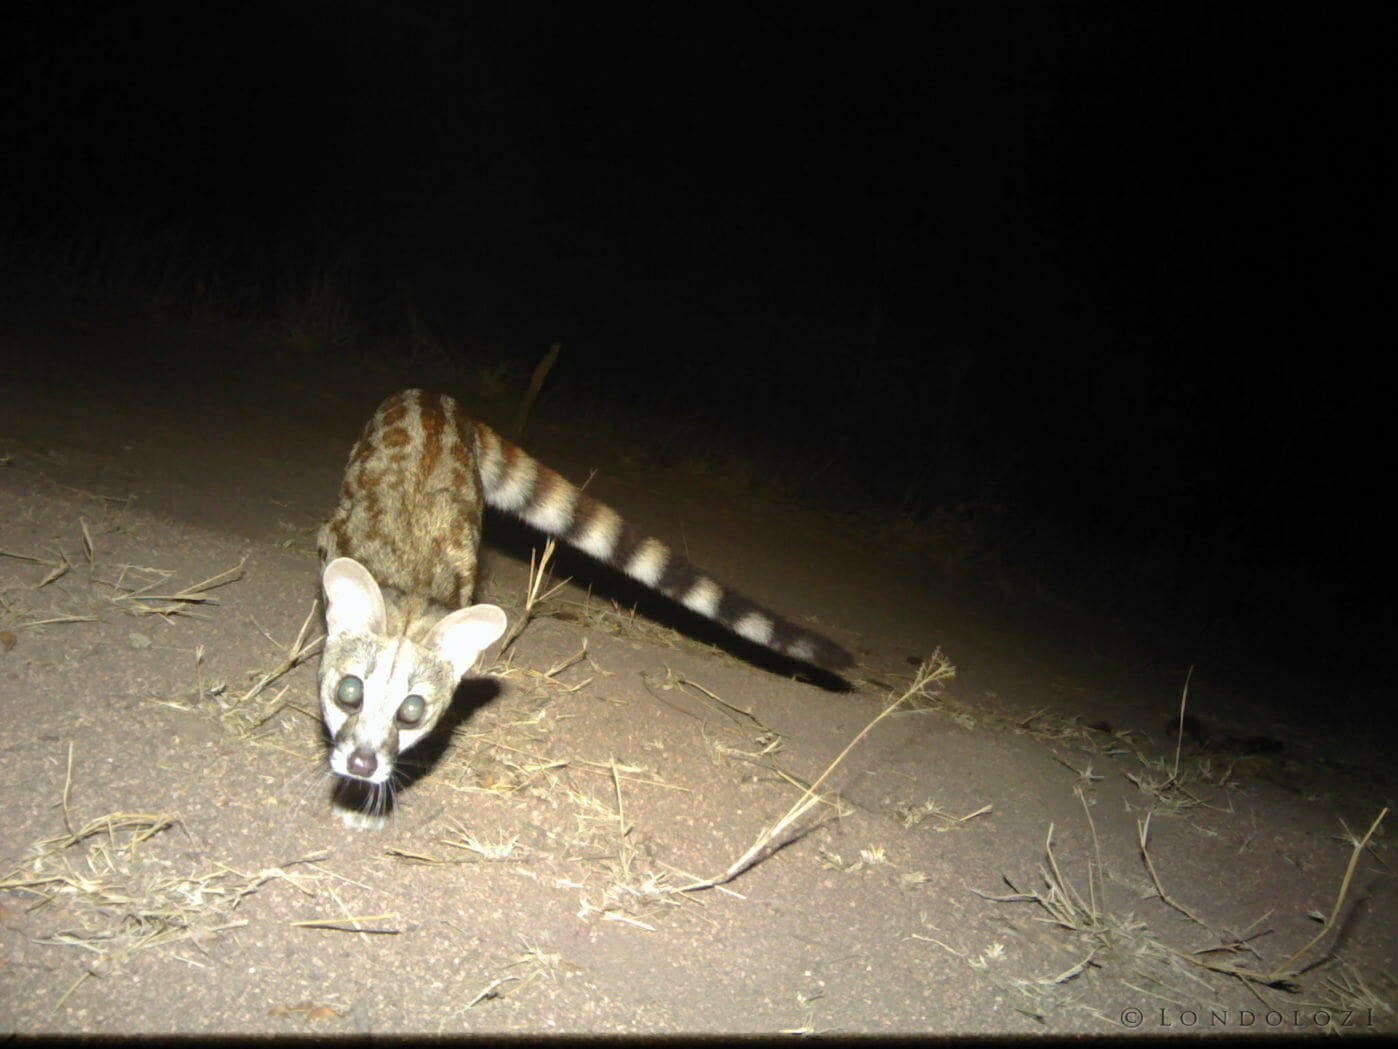 A large spotted genet looks curiously towards a camera trap set up in Londolozi